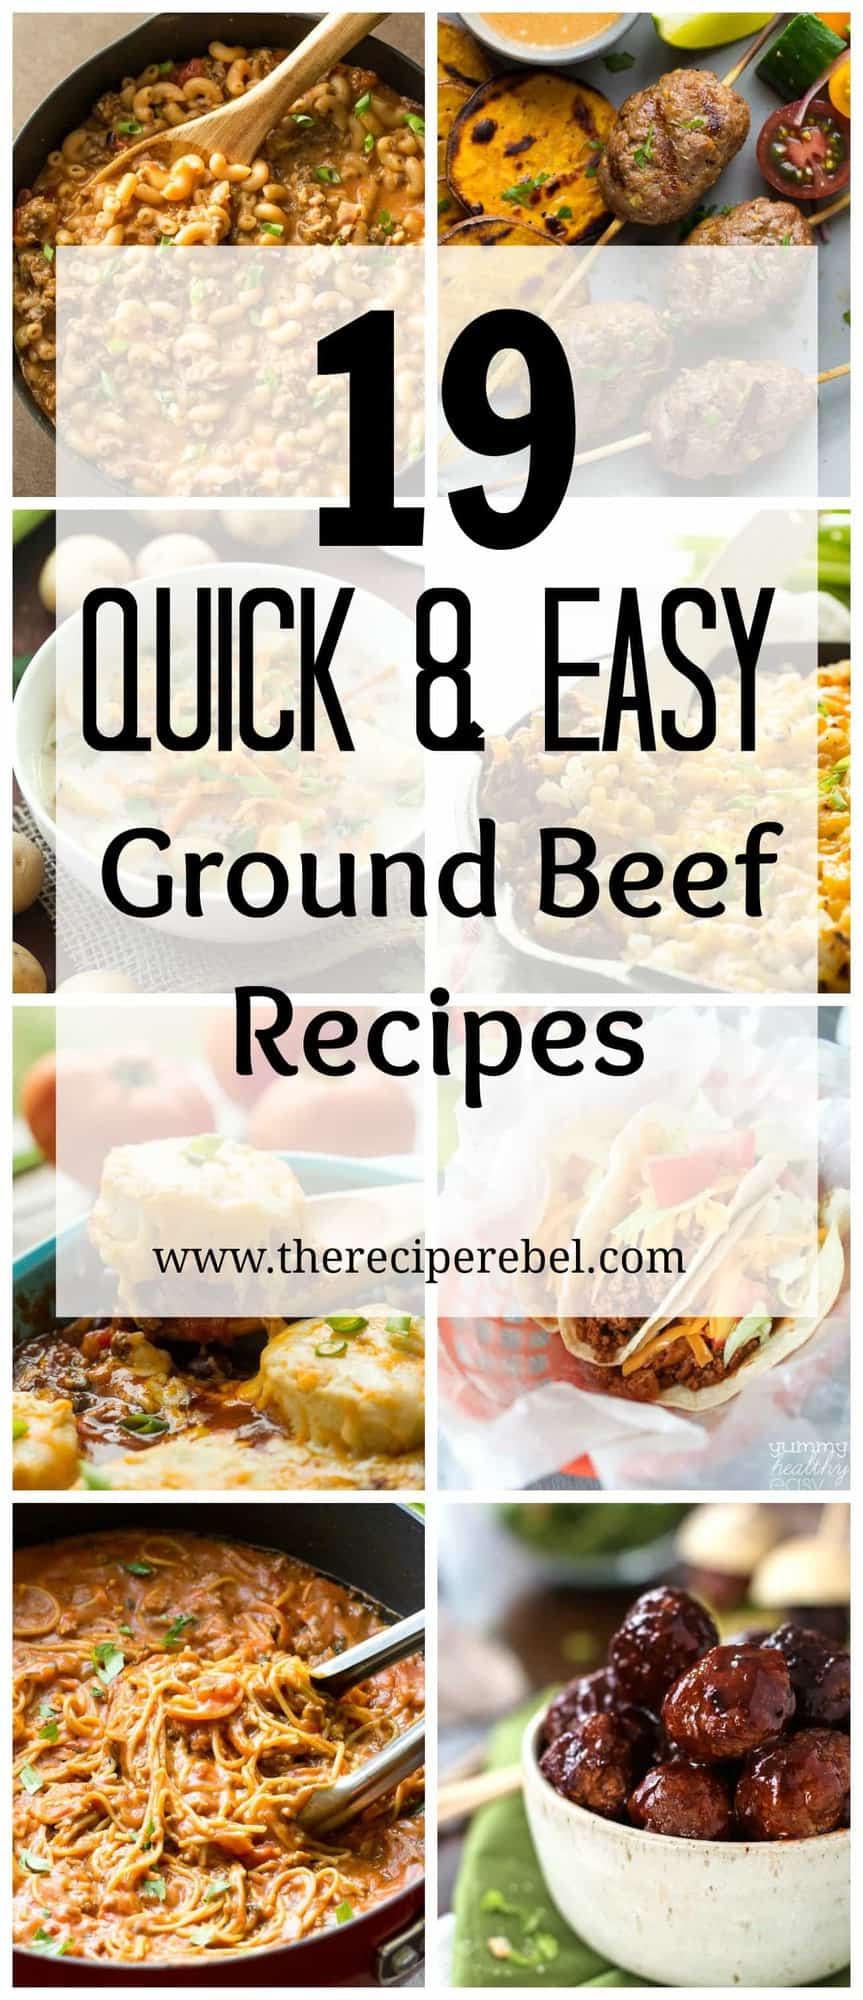 quick-and-easy-ground-beef-recipes-www.thereciperebel.com